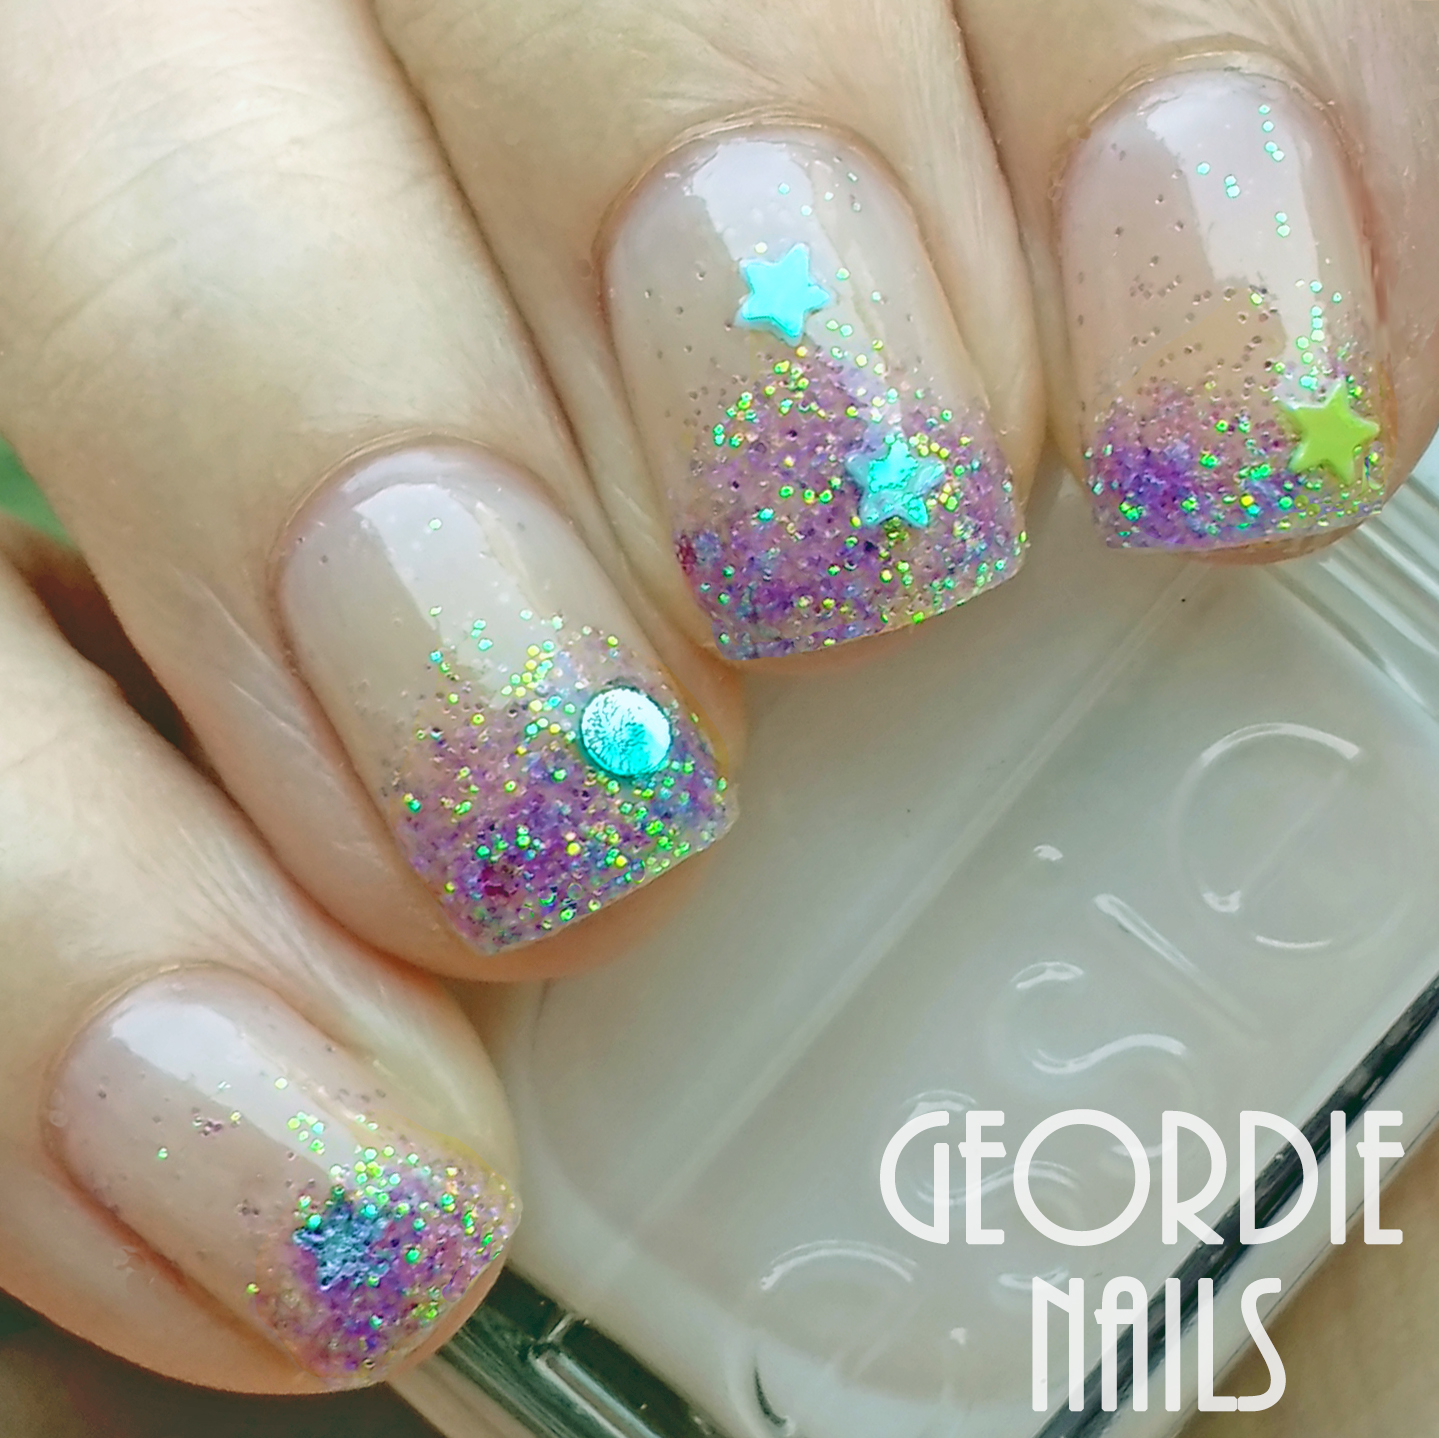 Geordie Nails: Charlies Nail Art ~ Glitter and Emojis!